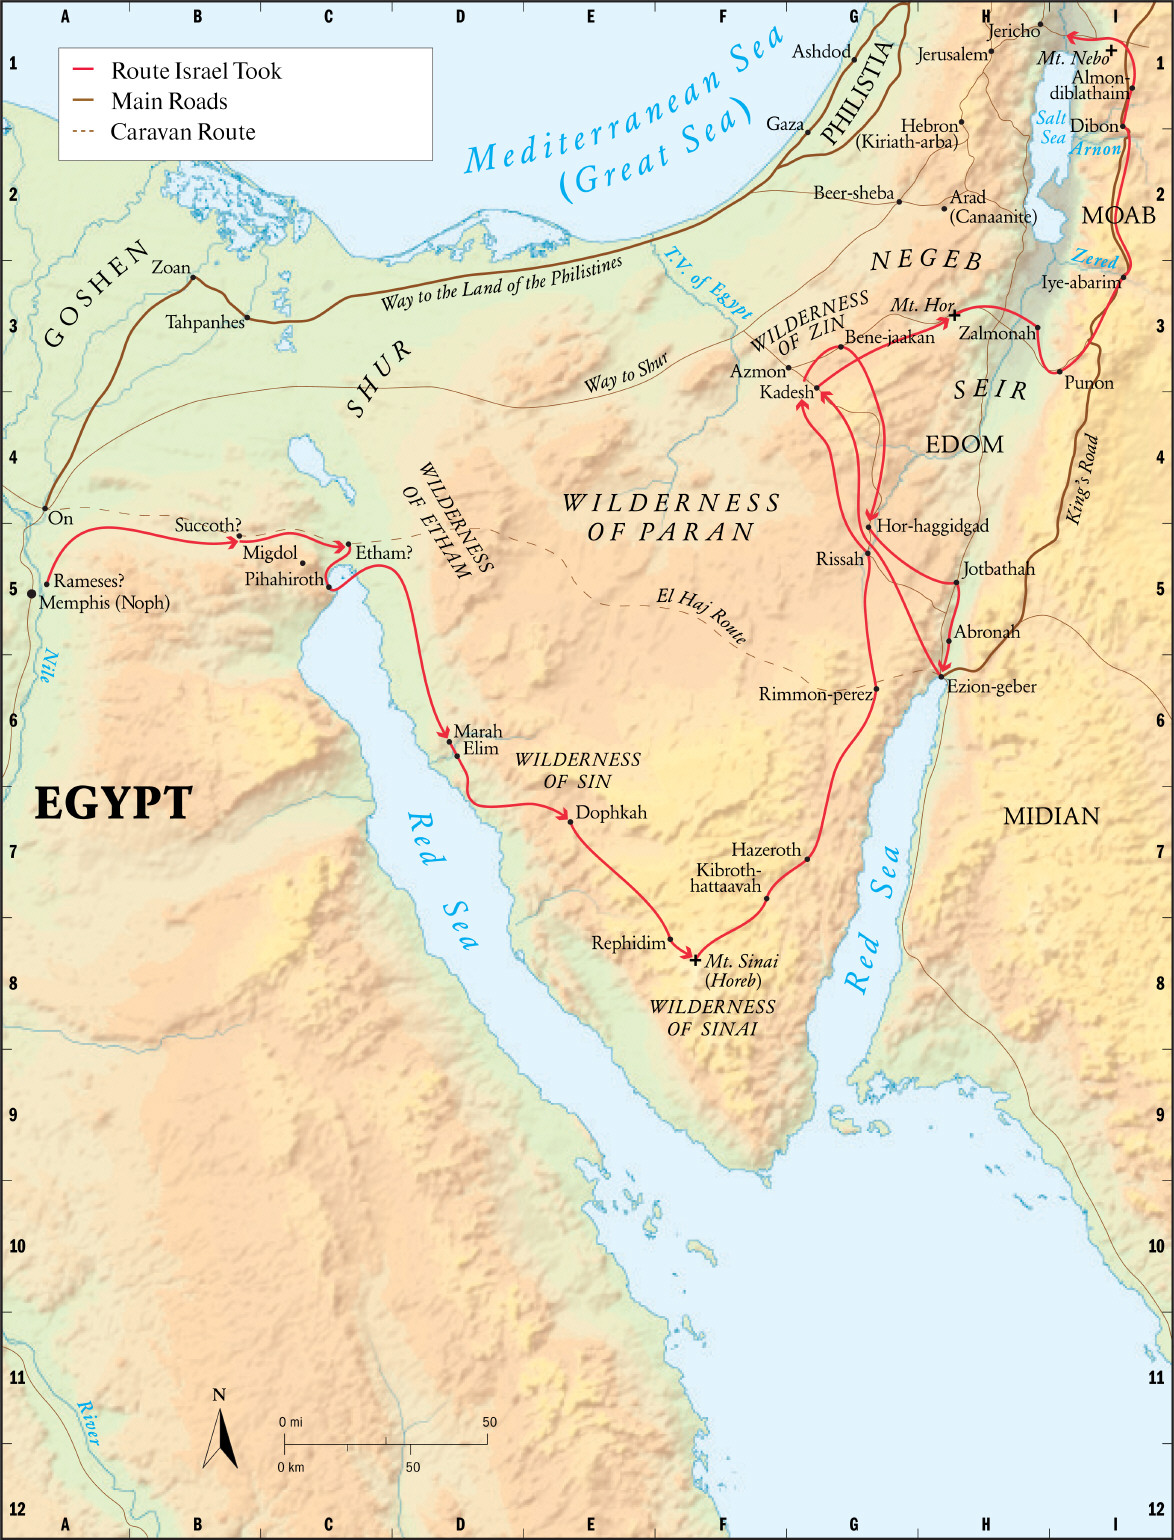 The Incorrect route of the Exodus from Egypt